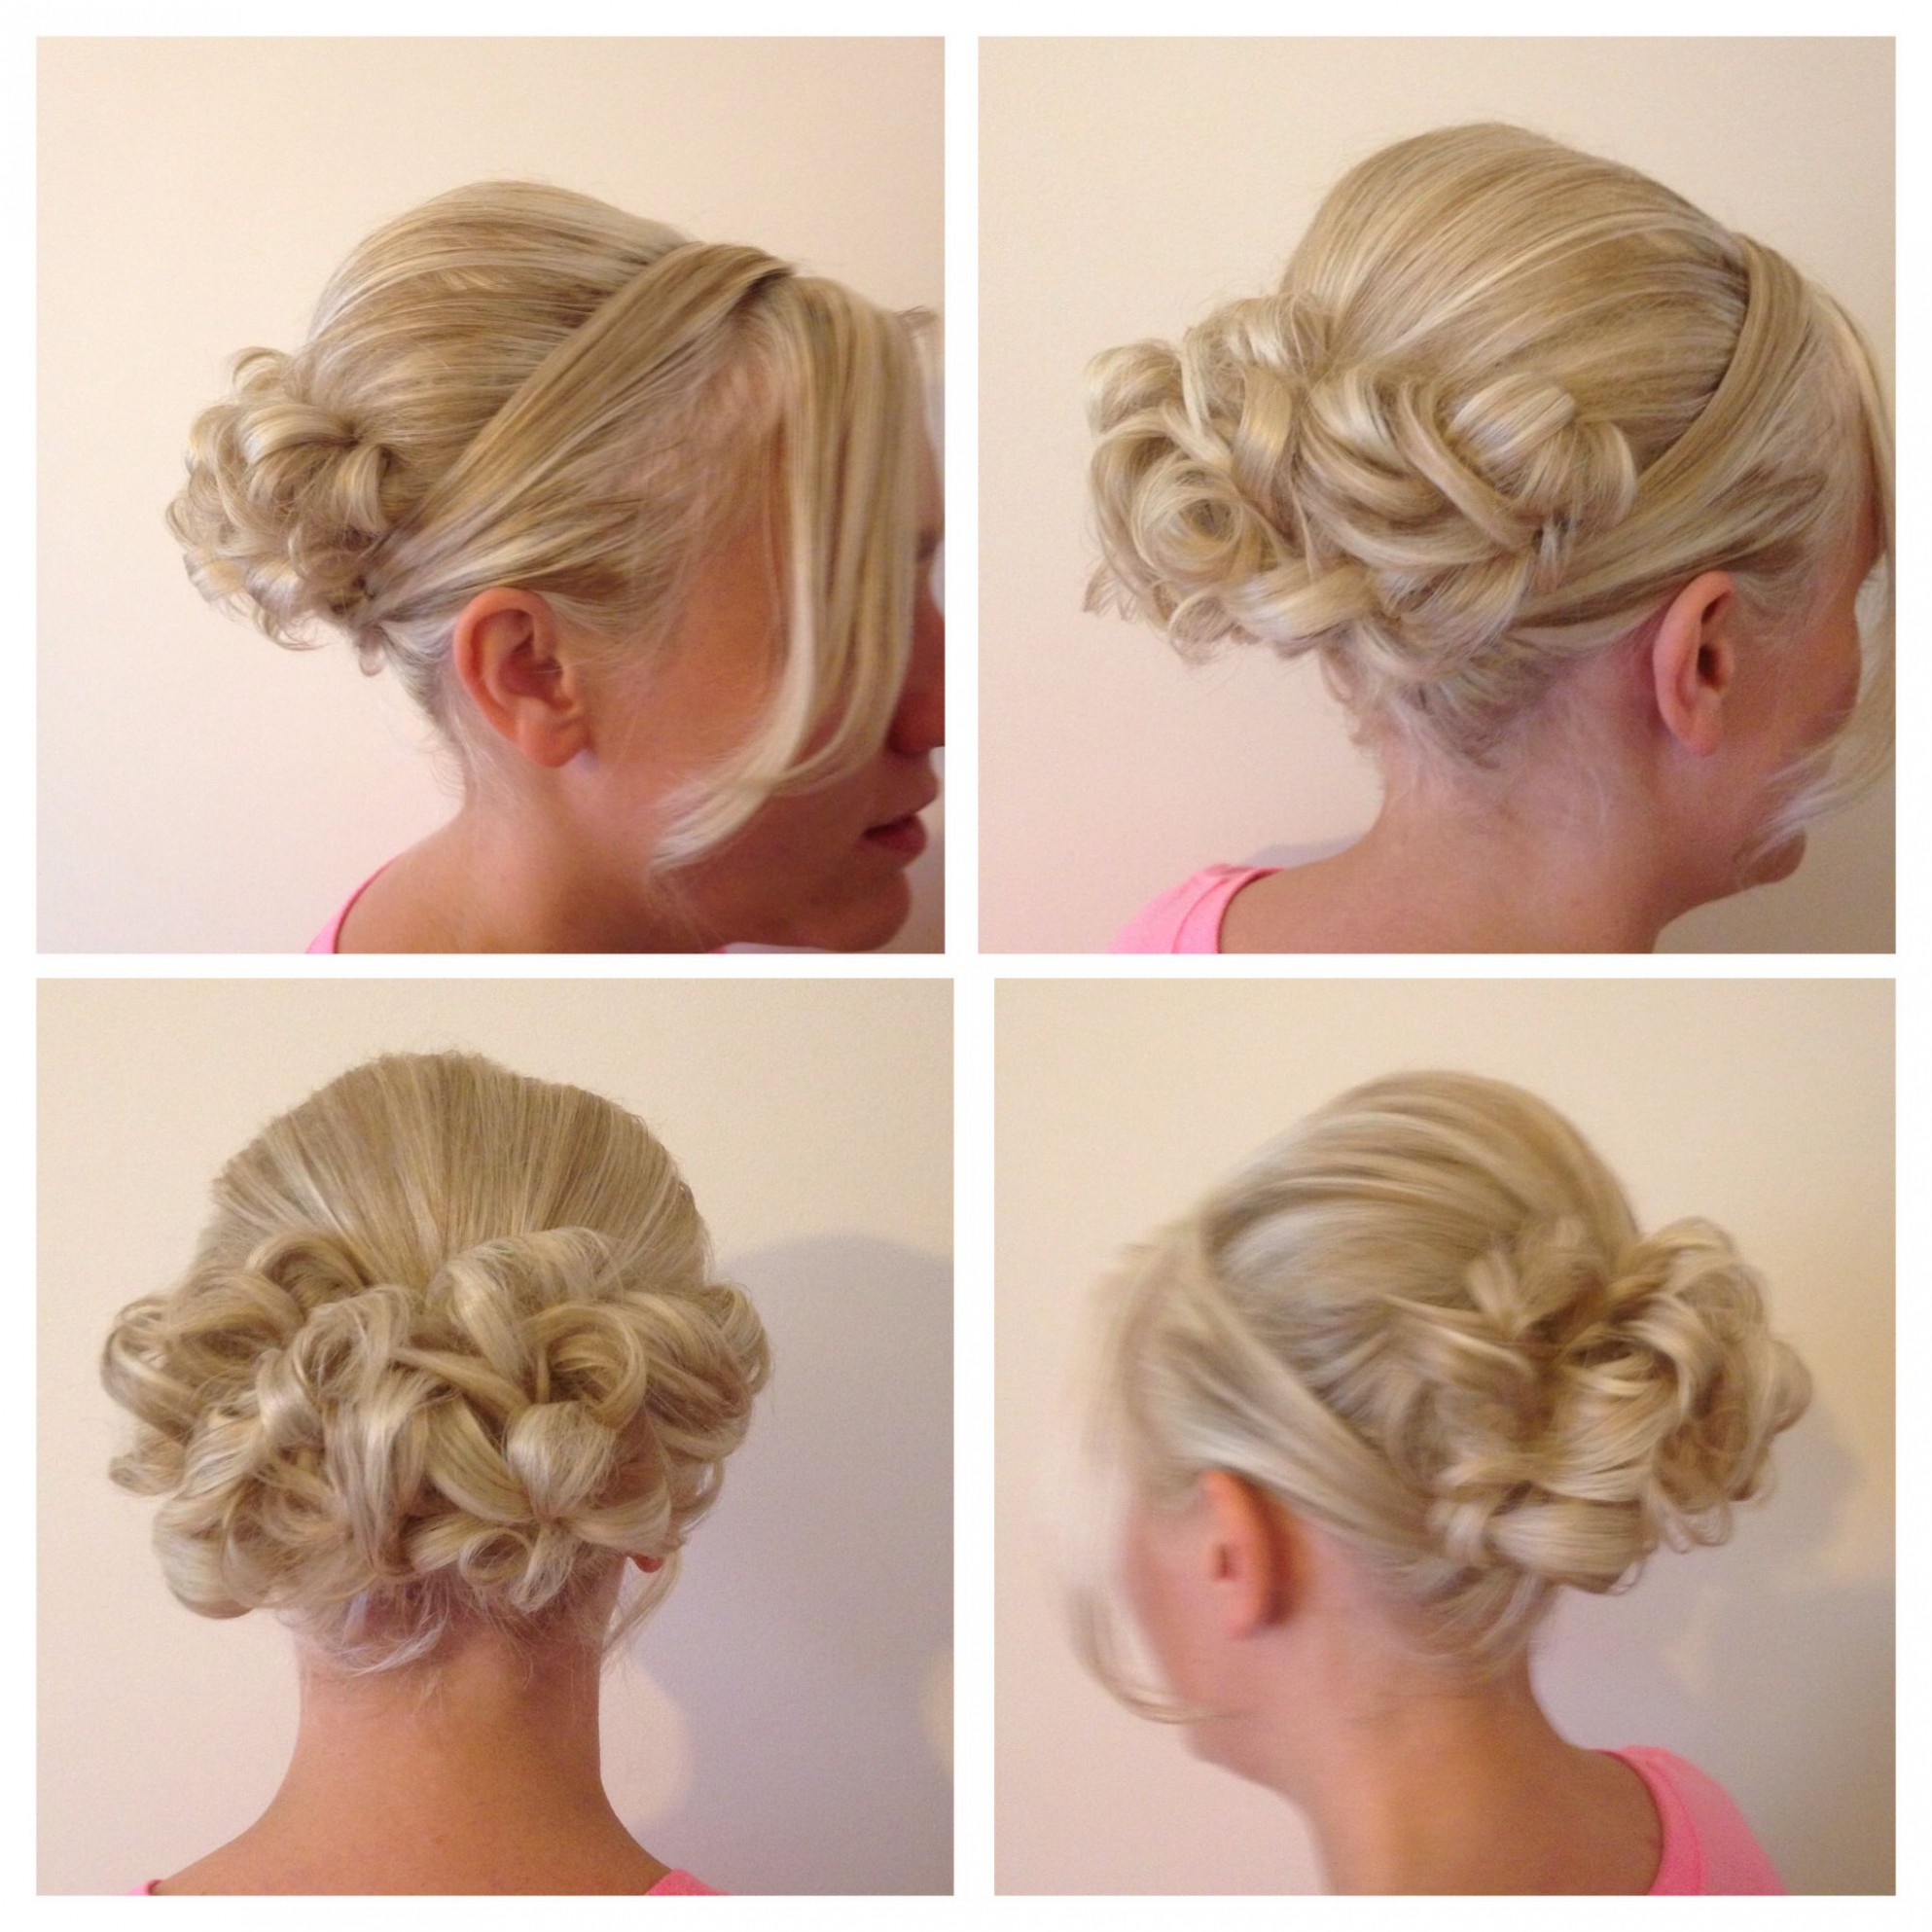 Hair Up Boof With Curls Pinned Up At The Back,sides Swept Round Pinned Up Curls